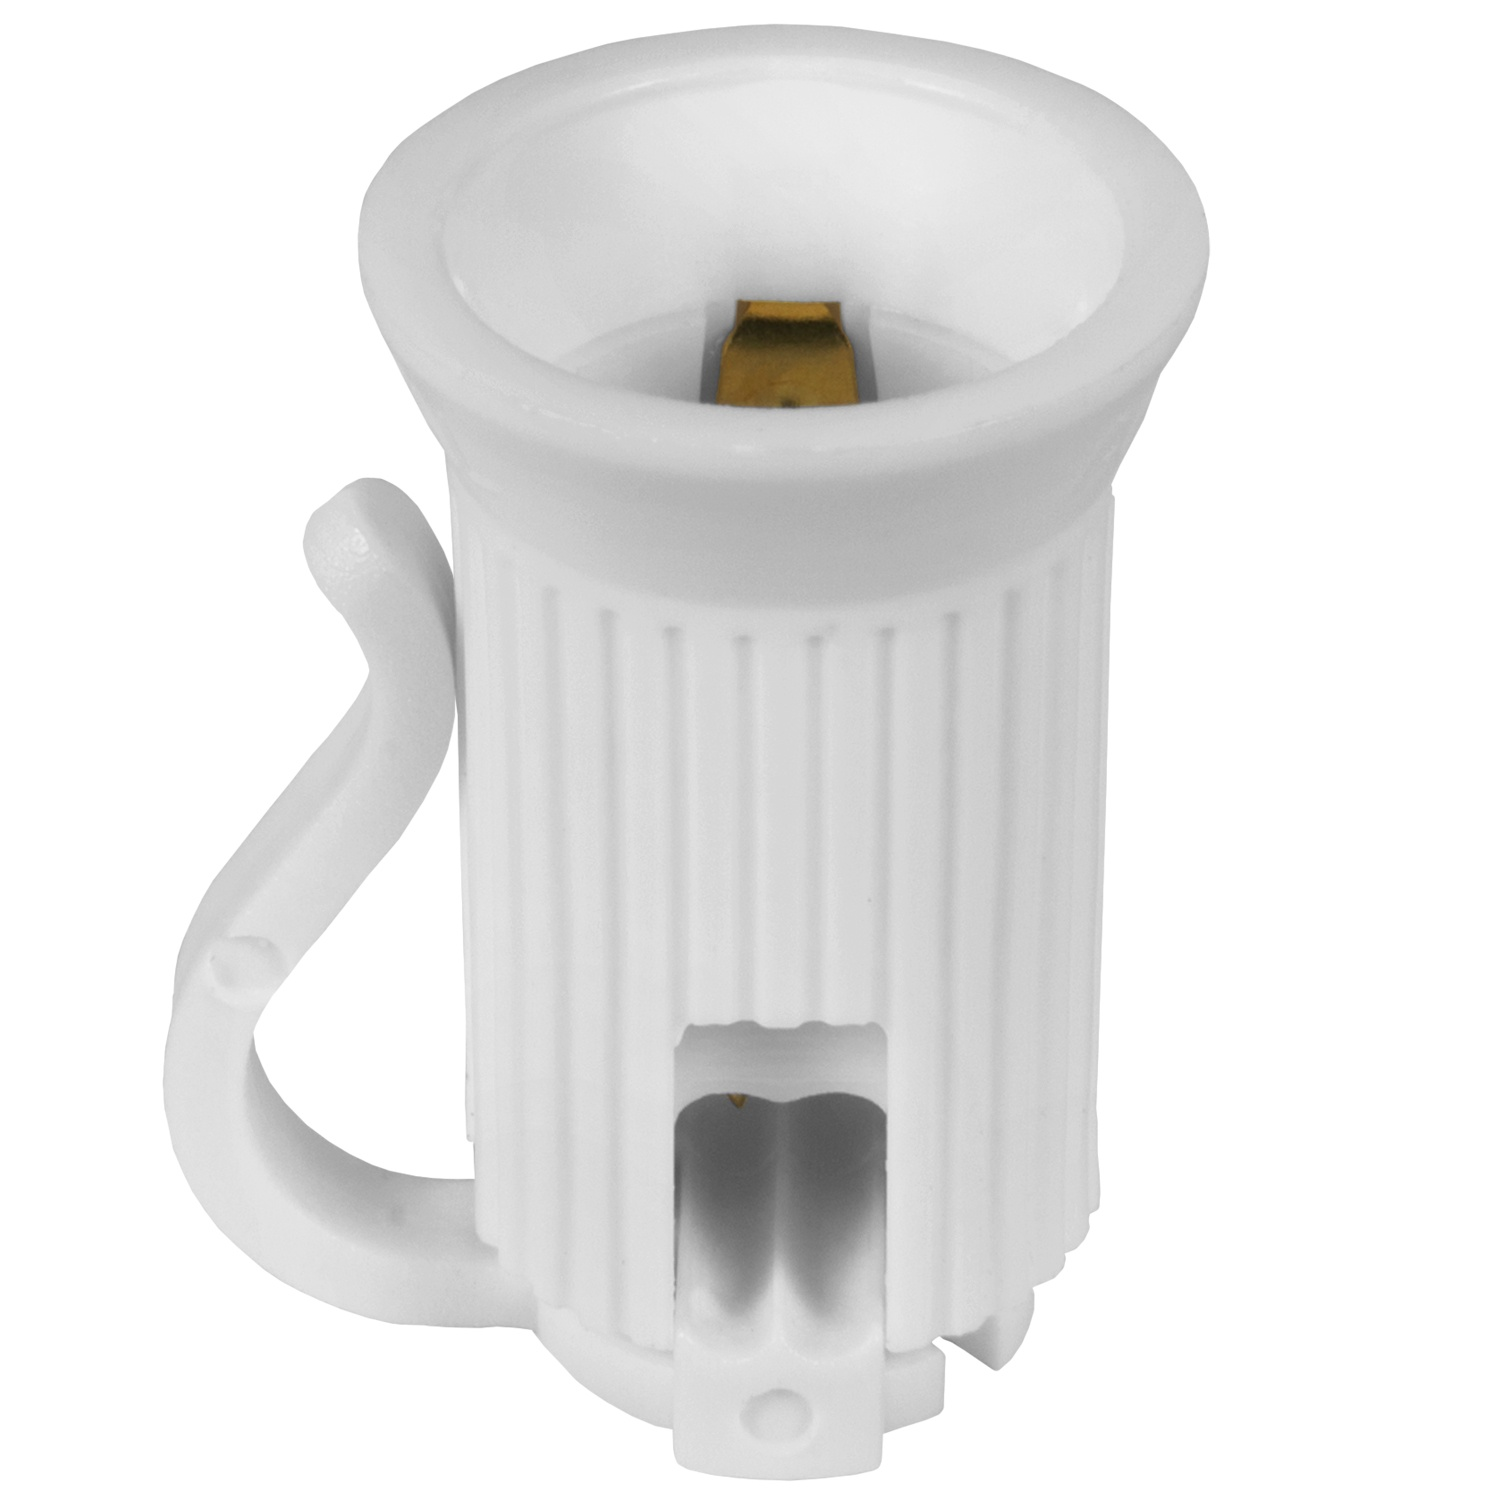 C7 White Socket